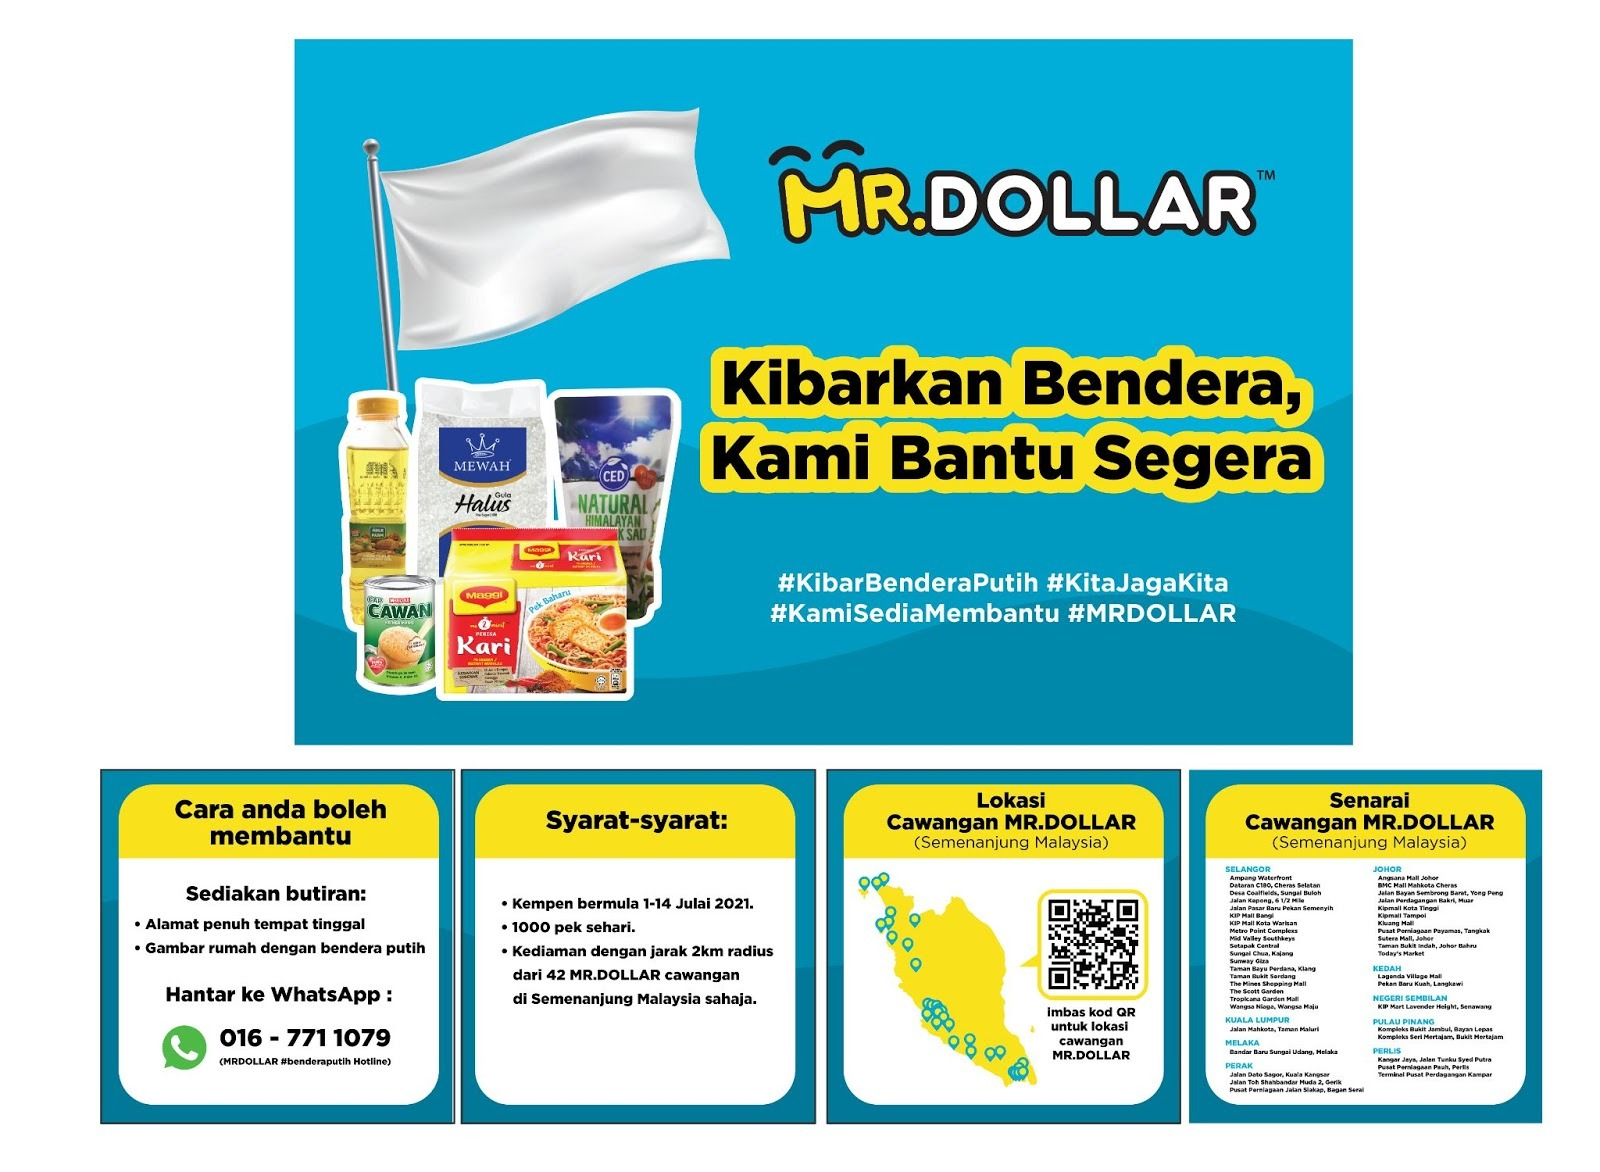 MR DOLLAR Is Offering Aid In Support Of The White Flag Campaign